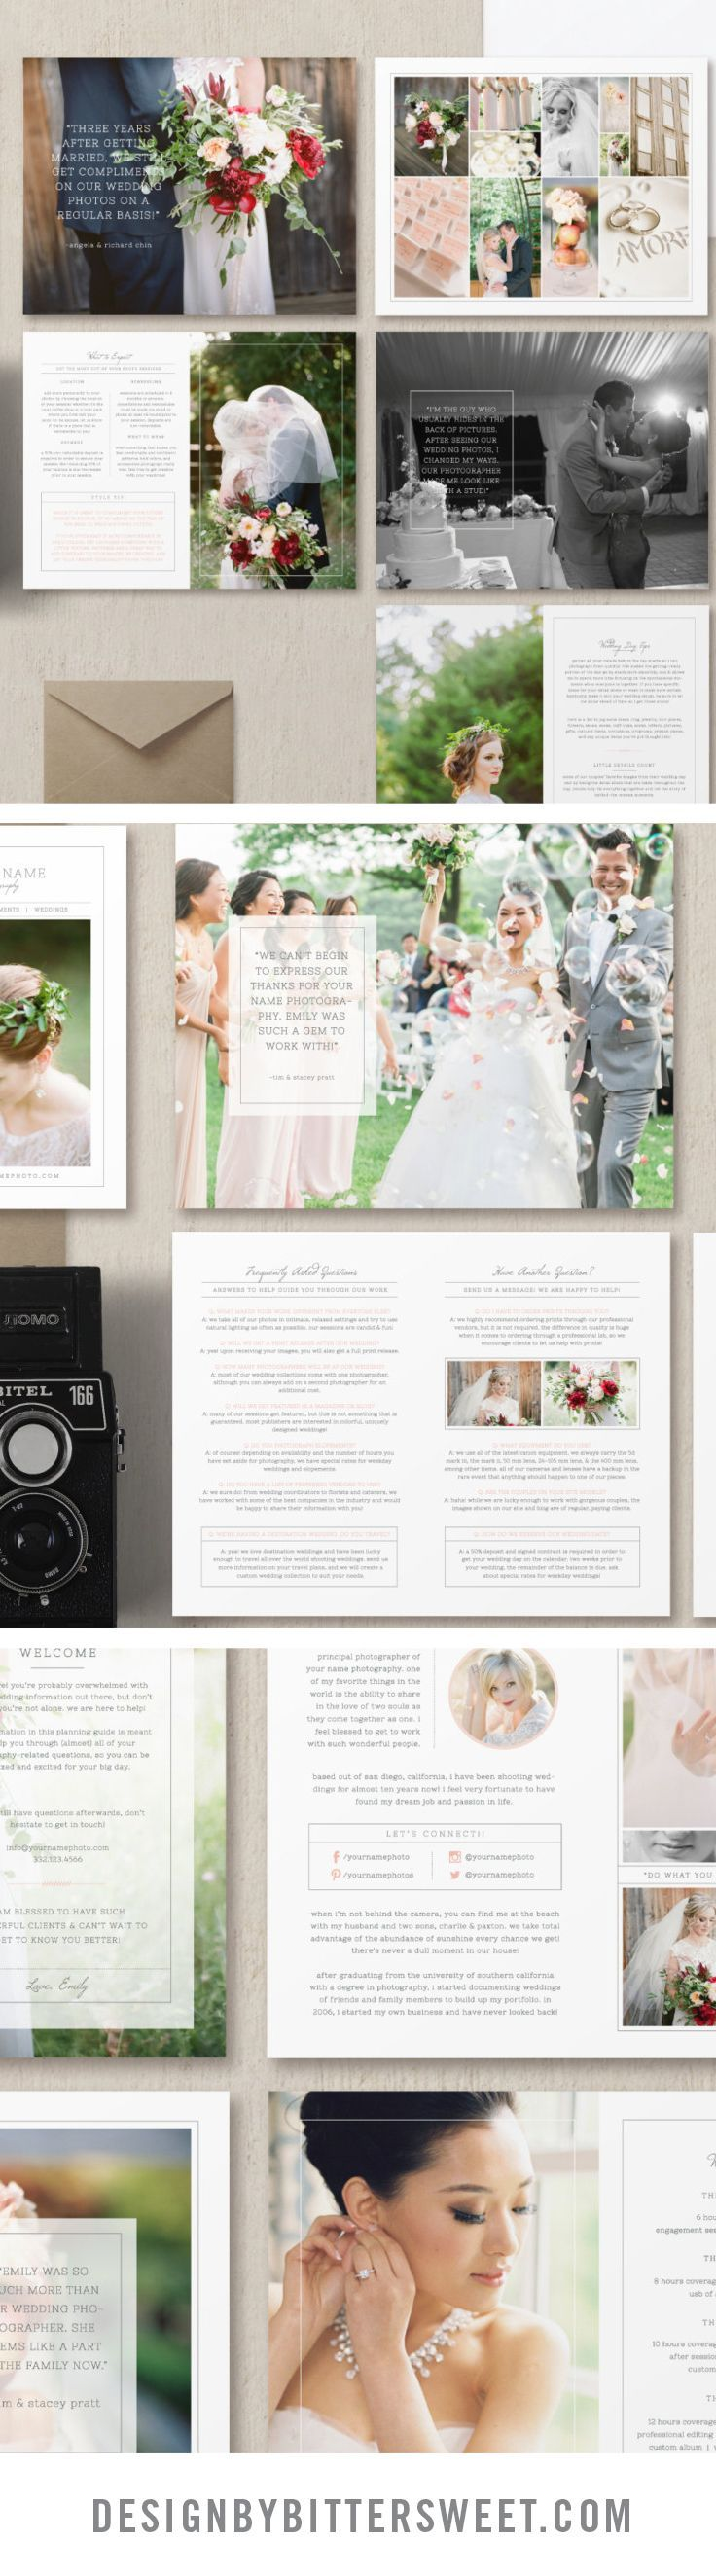 Create a unique magazine to attract your ideal clients and stand out above the crowd with this wedding welcome packet. Professionally written text along with customizable sections give you a versatile package to deliver to your clients as a digital guide or as a beautifully printed 8.5x11 magazine to show off your work. Beautiful images by @abbiemcfarland